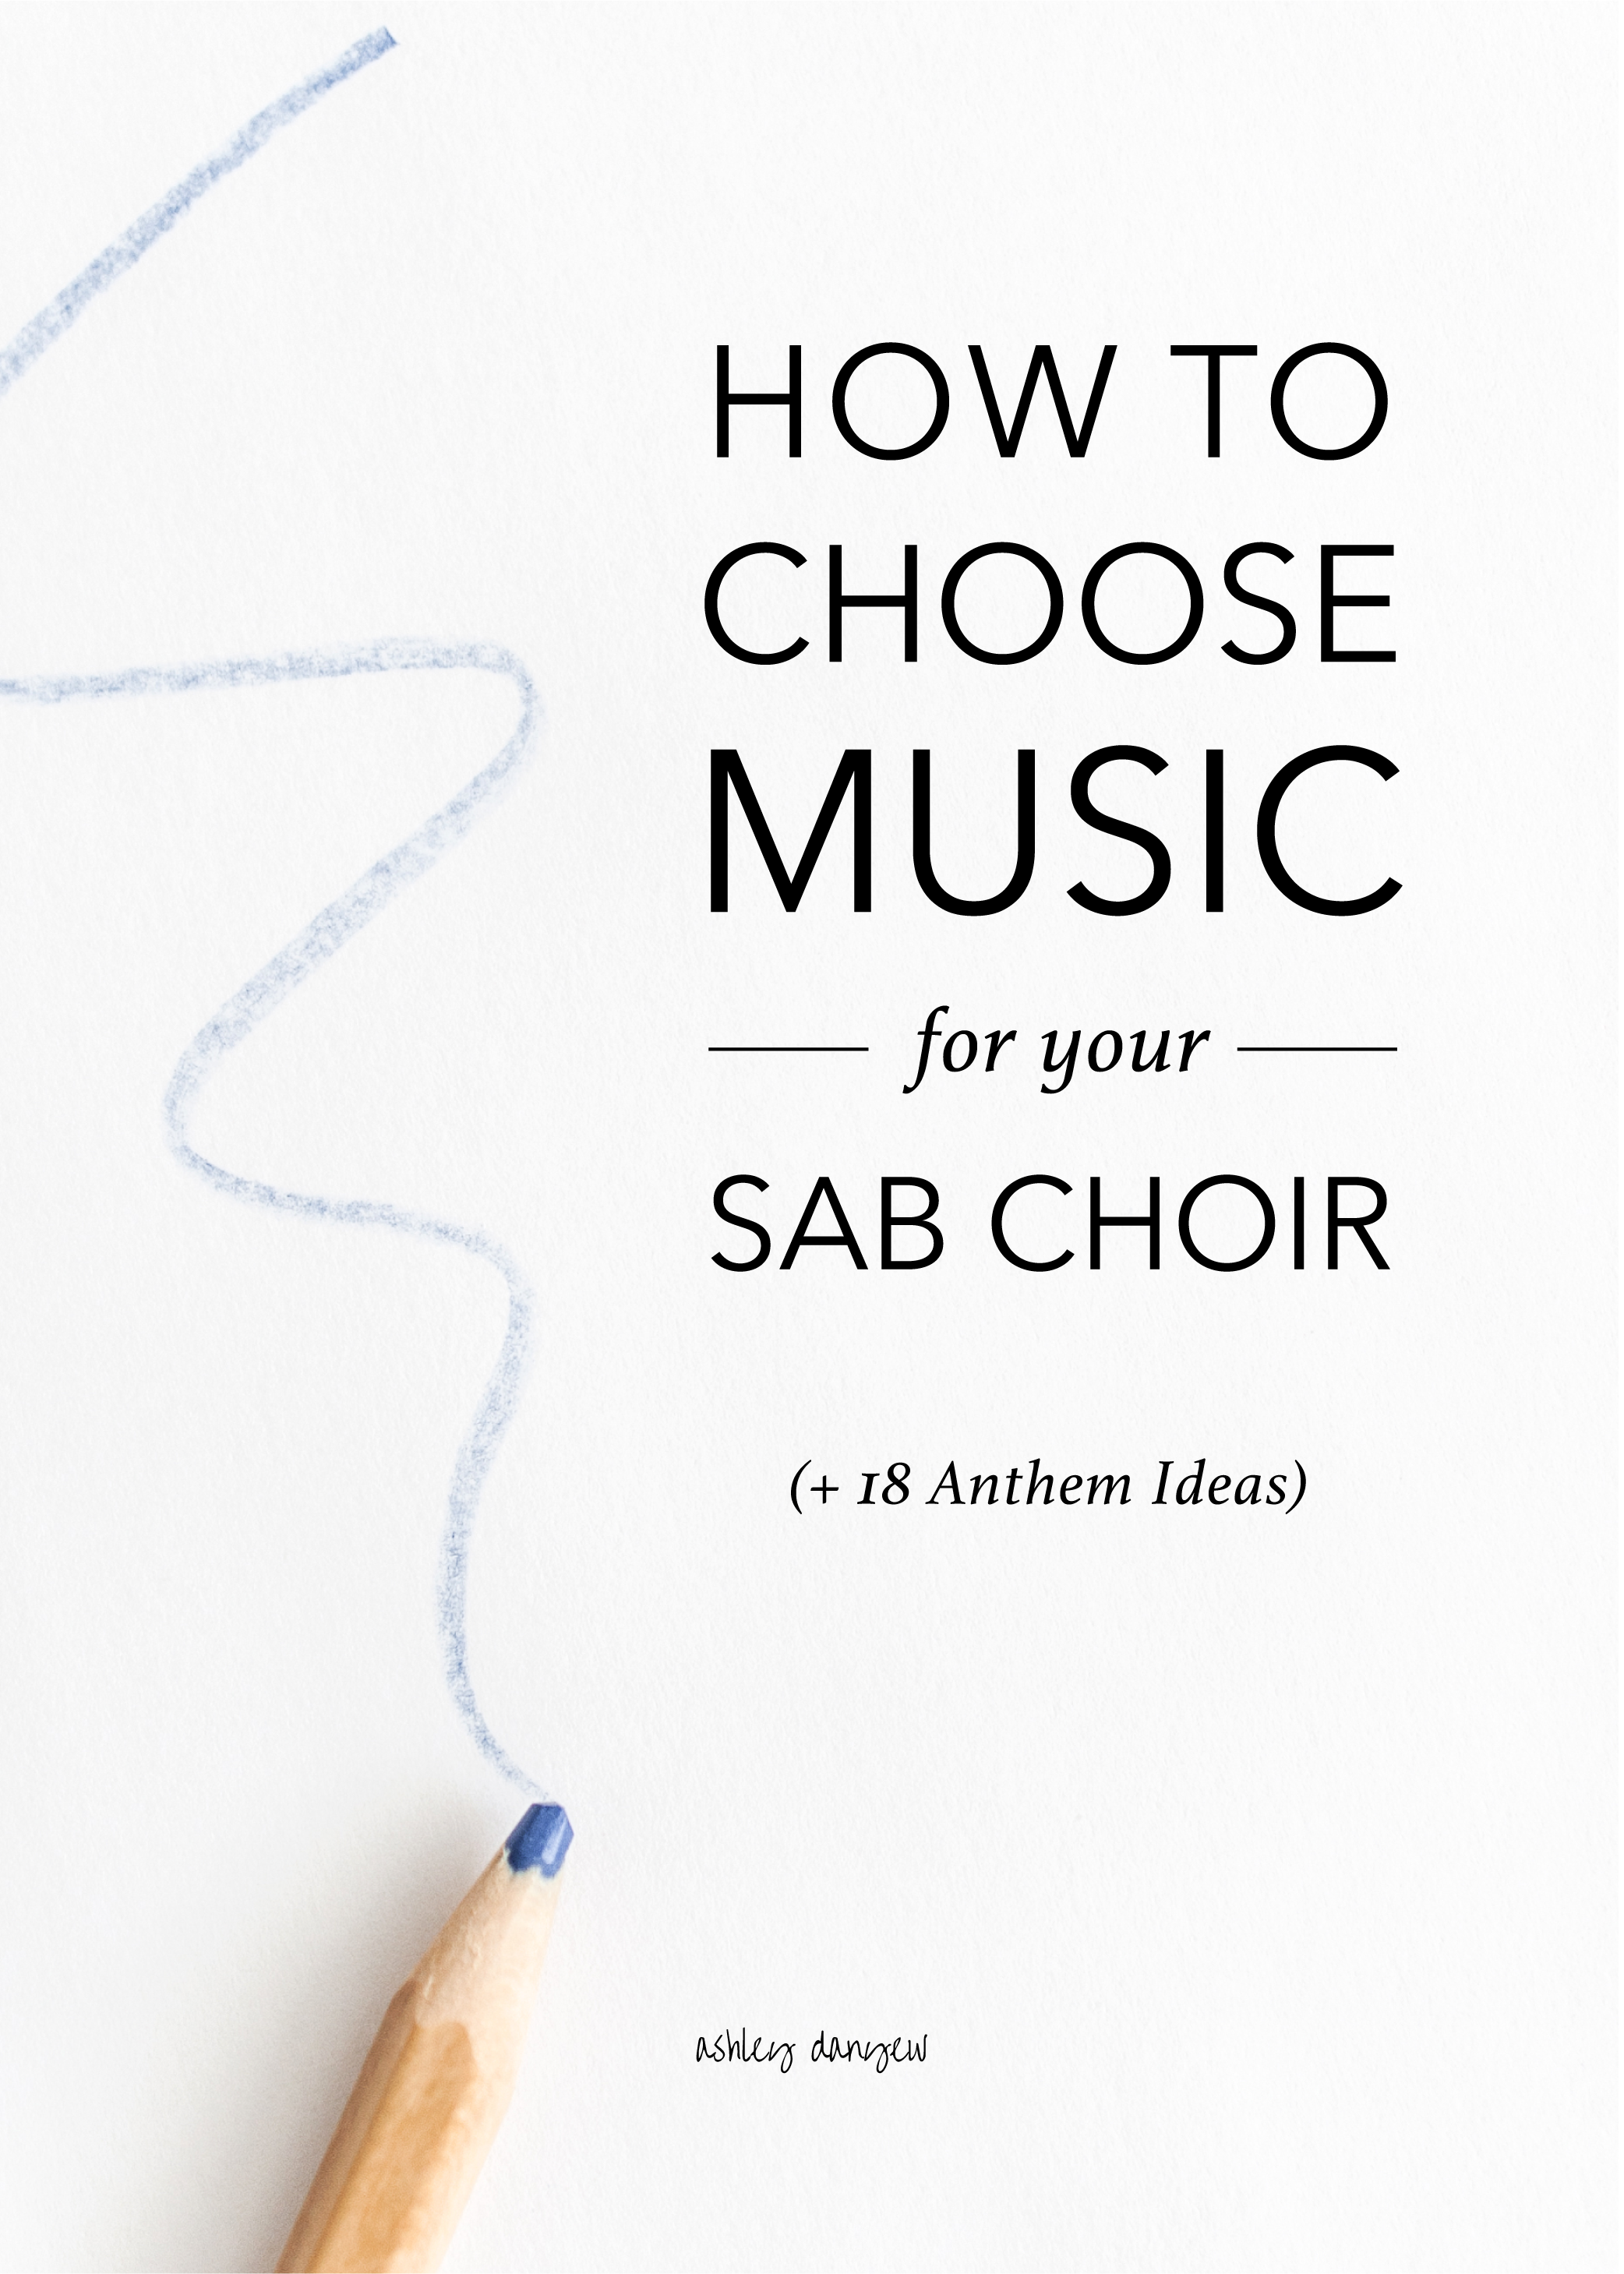 How to Choose Music for Your SAB Choir (+ 18 Anthem Ideas